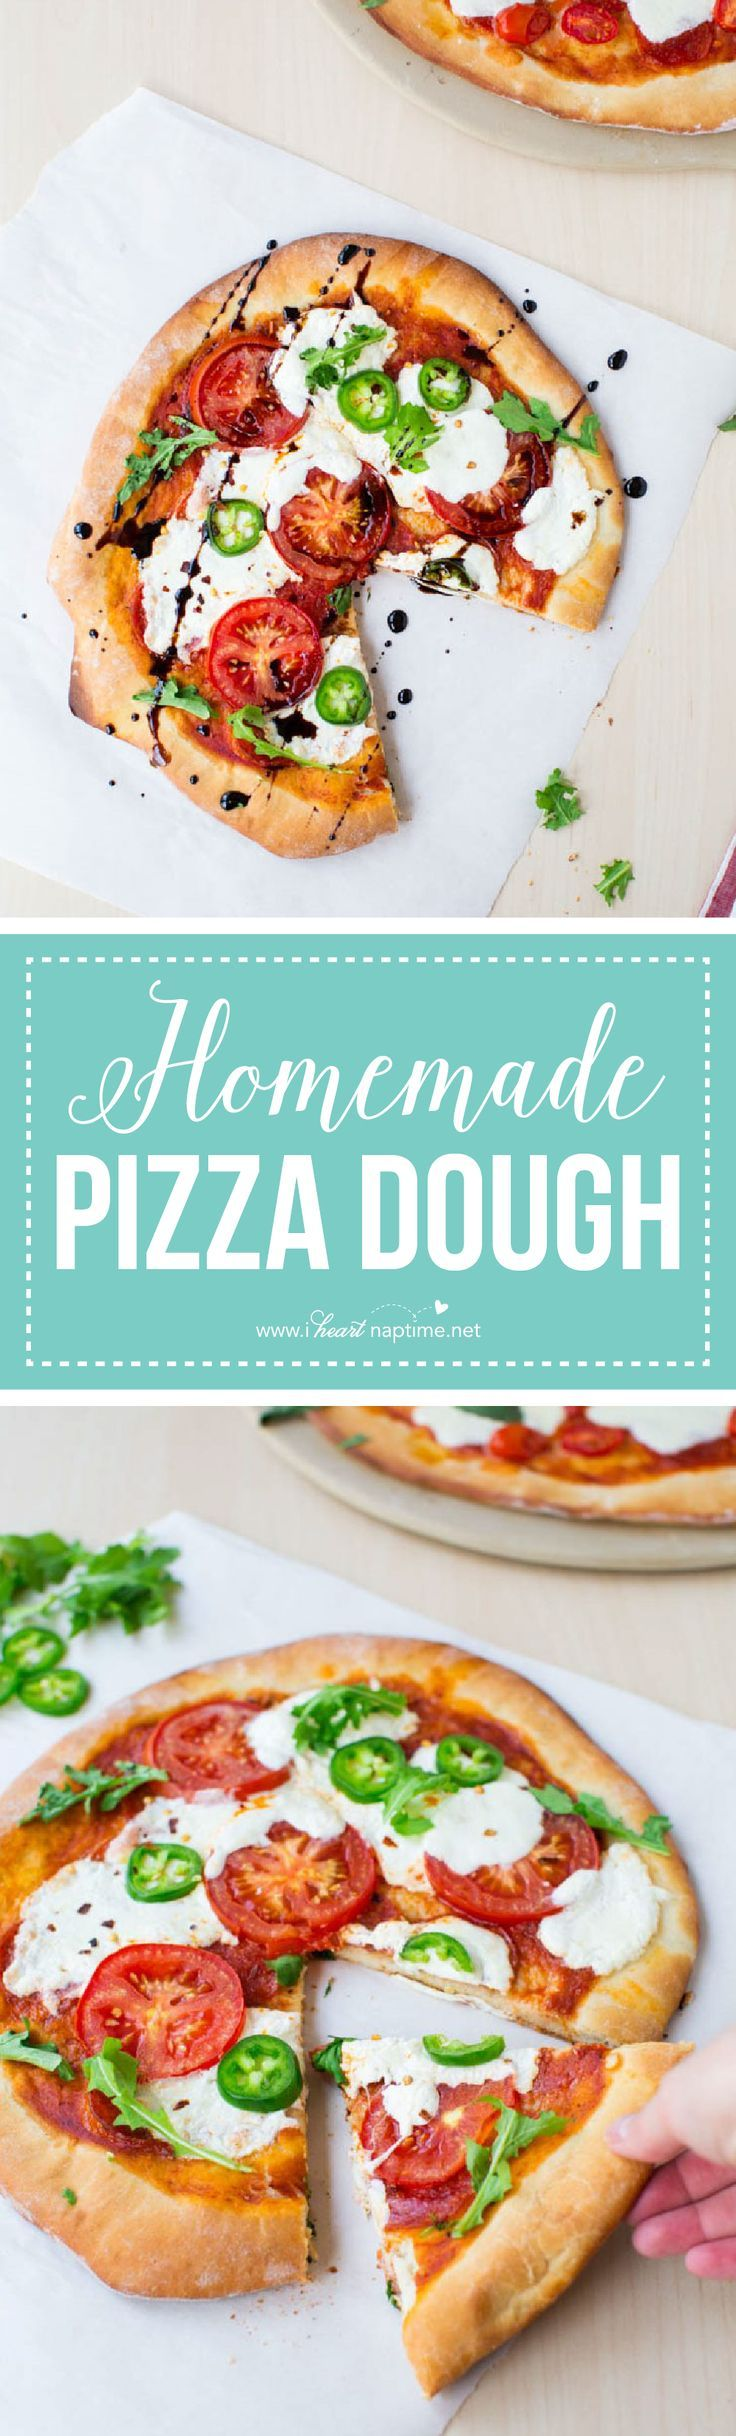 I\'m excited to share my favorite Homemade Pizza Dough recipe with ...